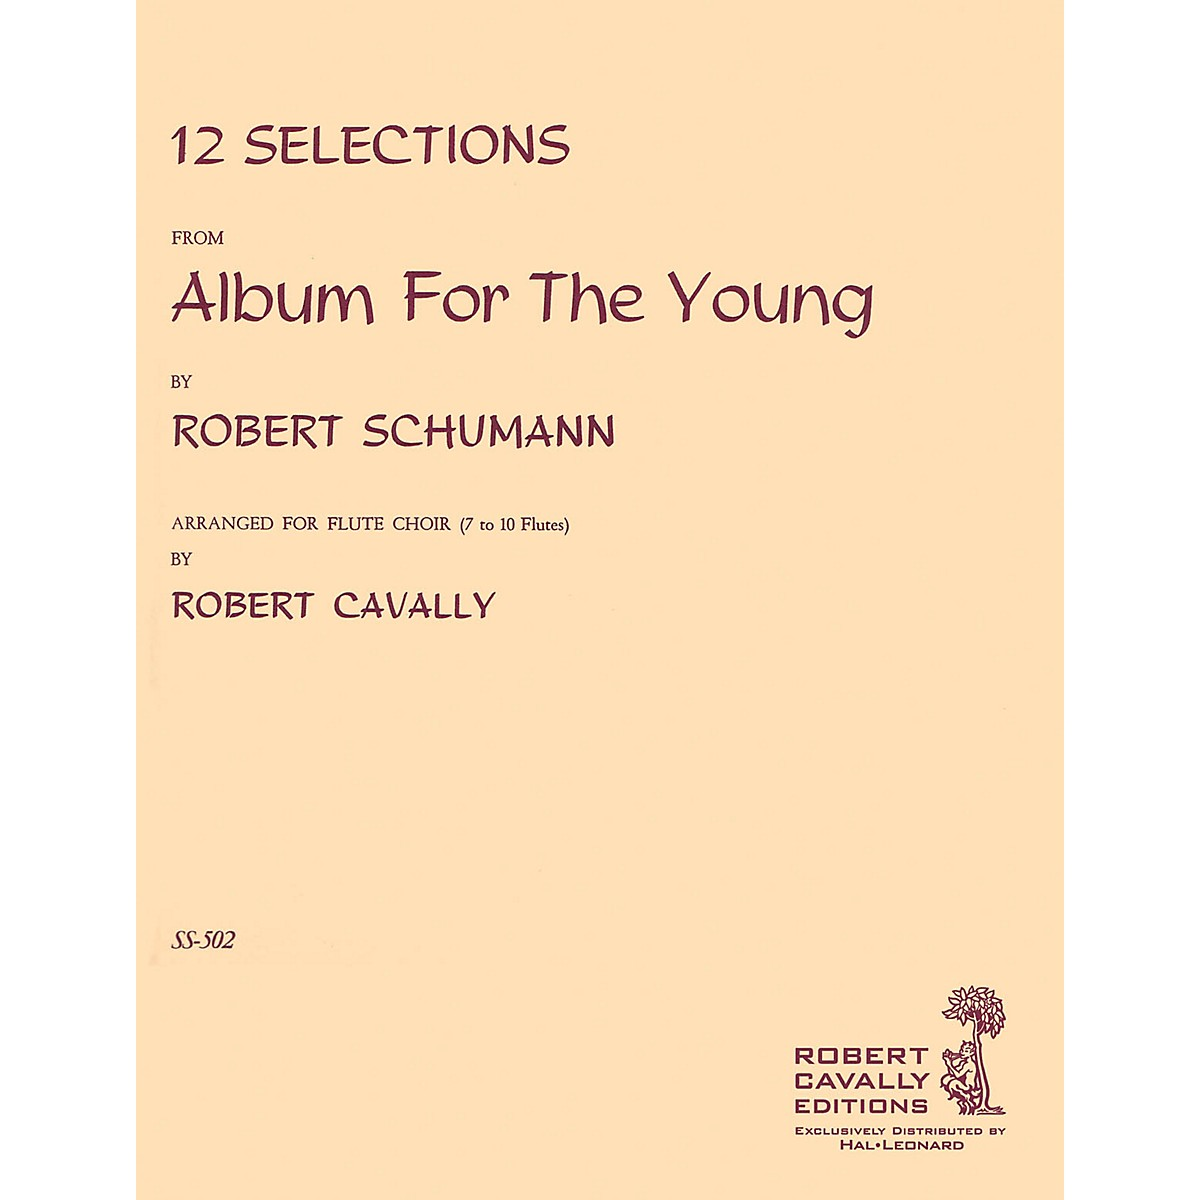 Cavally Editions Album for the Young (12 Selections for Flute Choir) Robert Cavally Editions Series by Robert Cavally